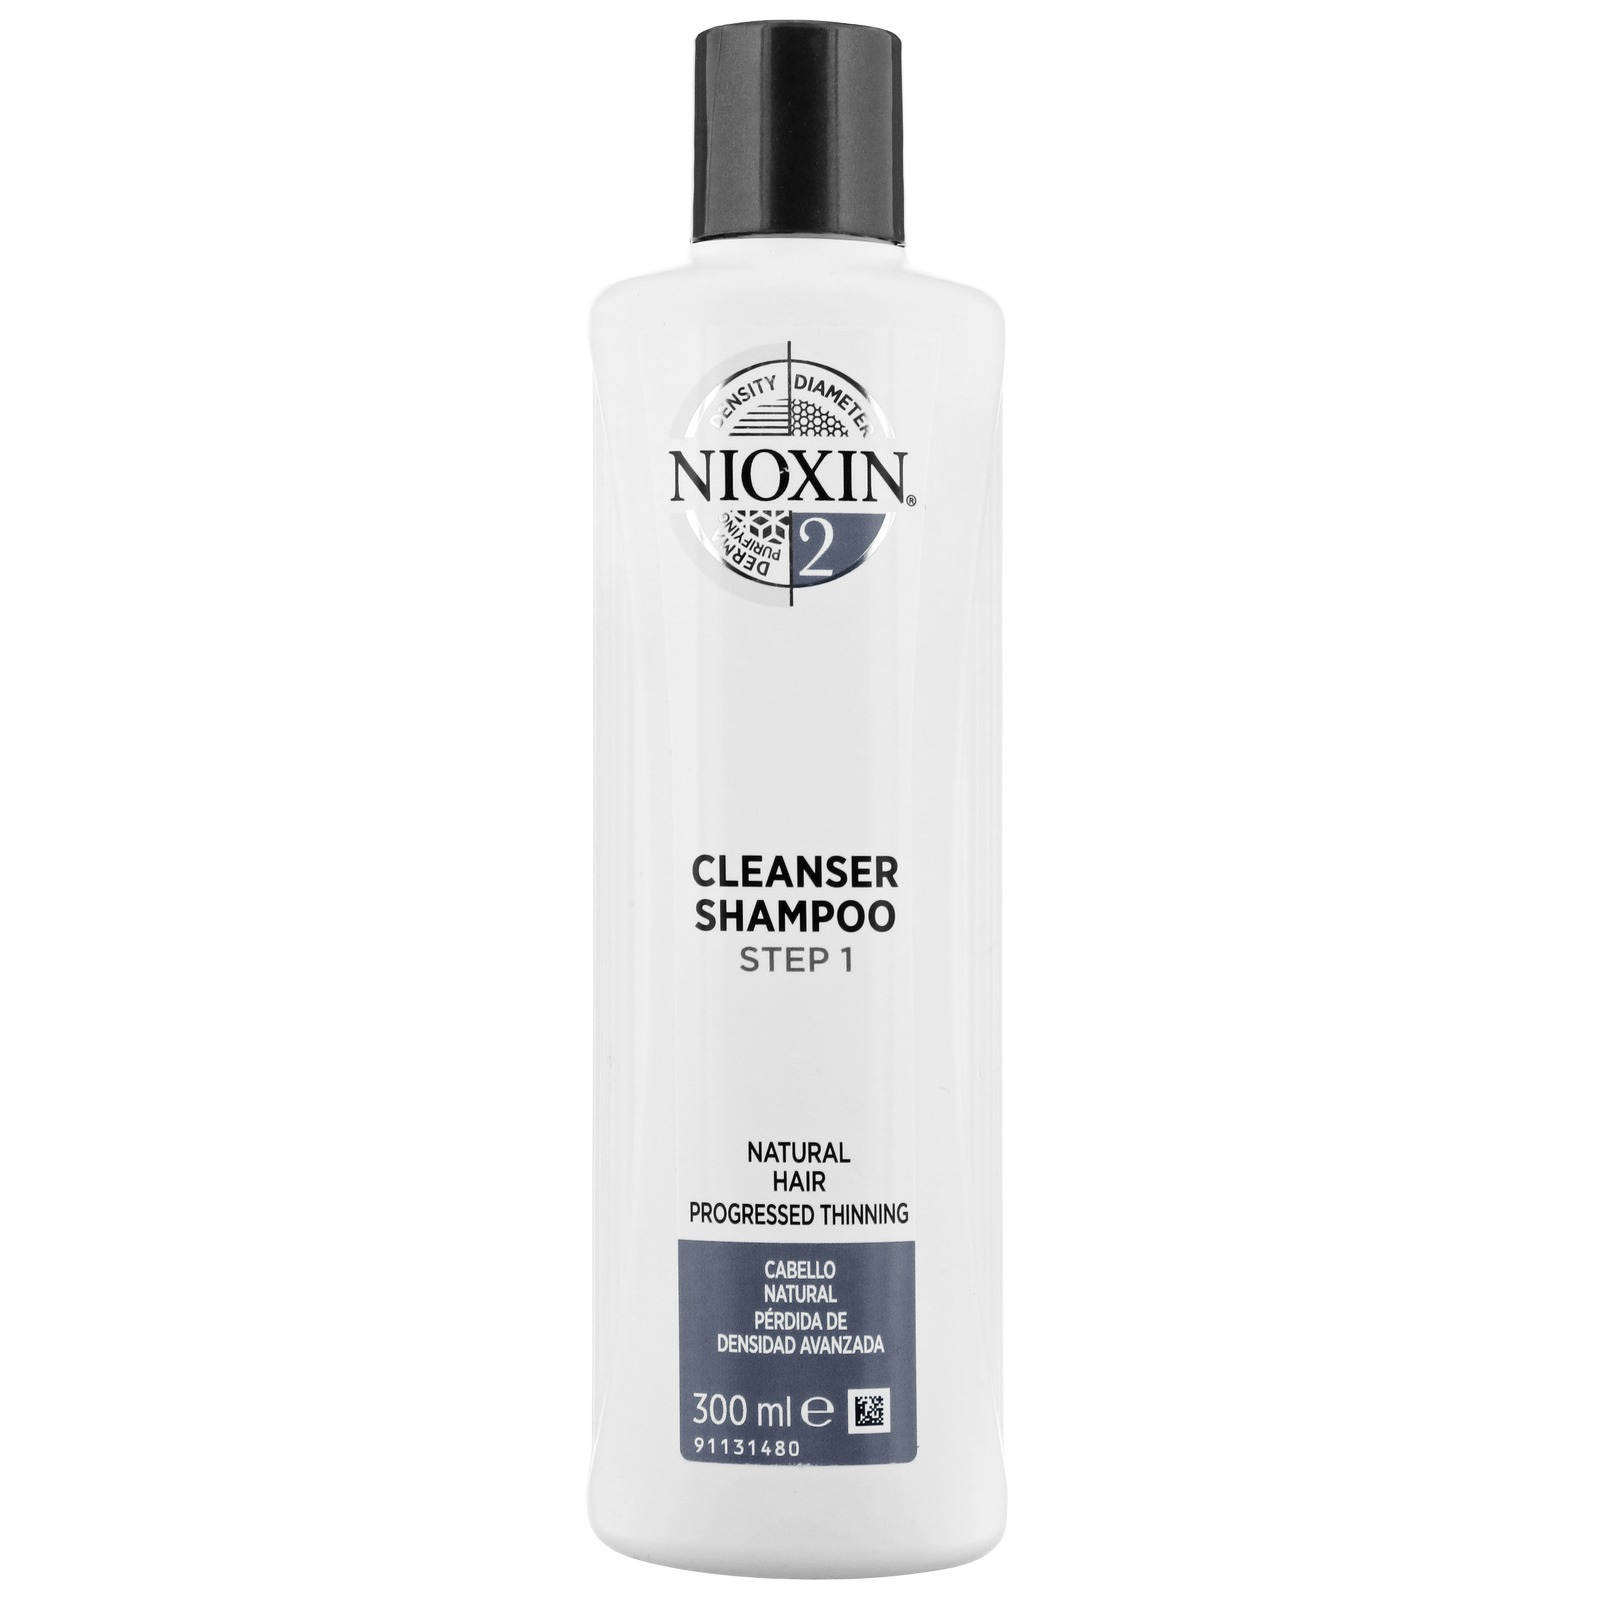 Nioxin 3D Care System  System 2 Step 1 Cleanser Shampoo: For Natural Hair And Progressed Thinning 300ml